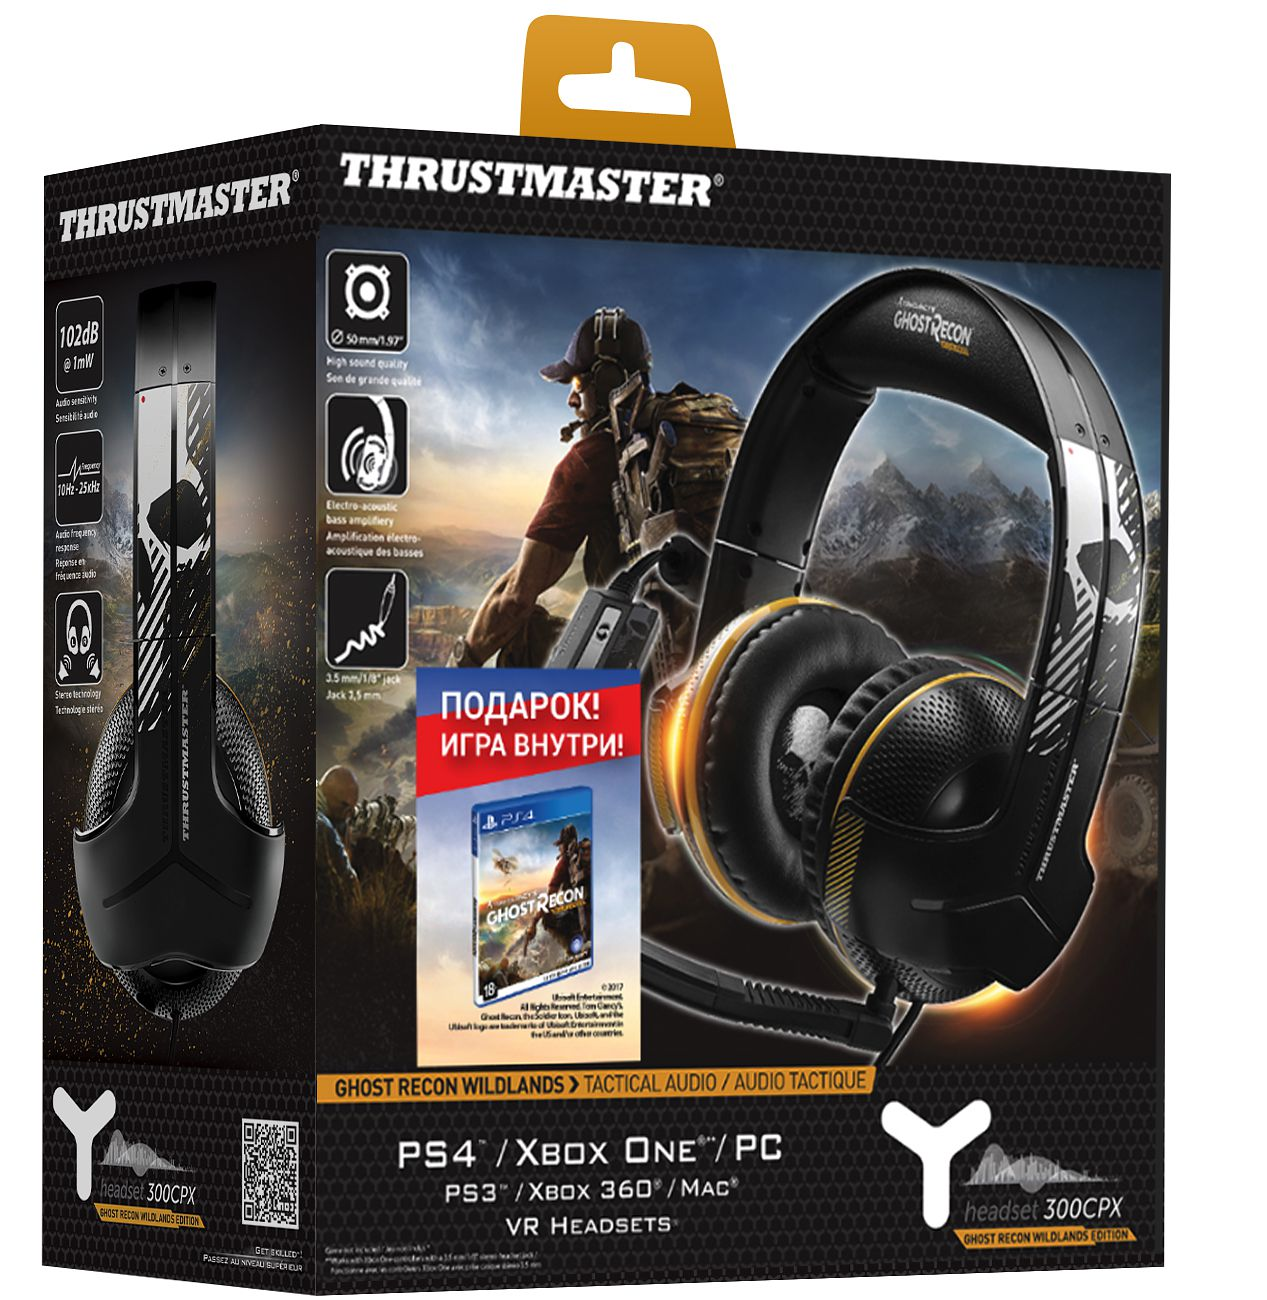 Игровая гарнитура Thrustmaster Y300CPX Ghost Recon Wildlands Edition для PS4 / PS3 / Xbox One / Xbox 360 / PC + игра Tom Clancy's Ghost Recon: Wildlands [PS4] видеоигра для xbox one overwatch origins edition